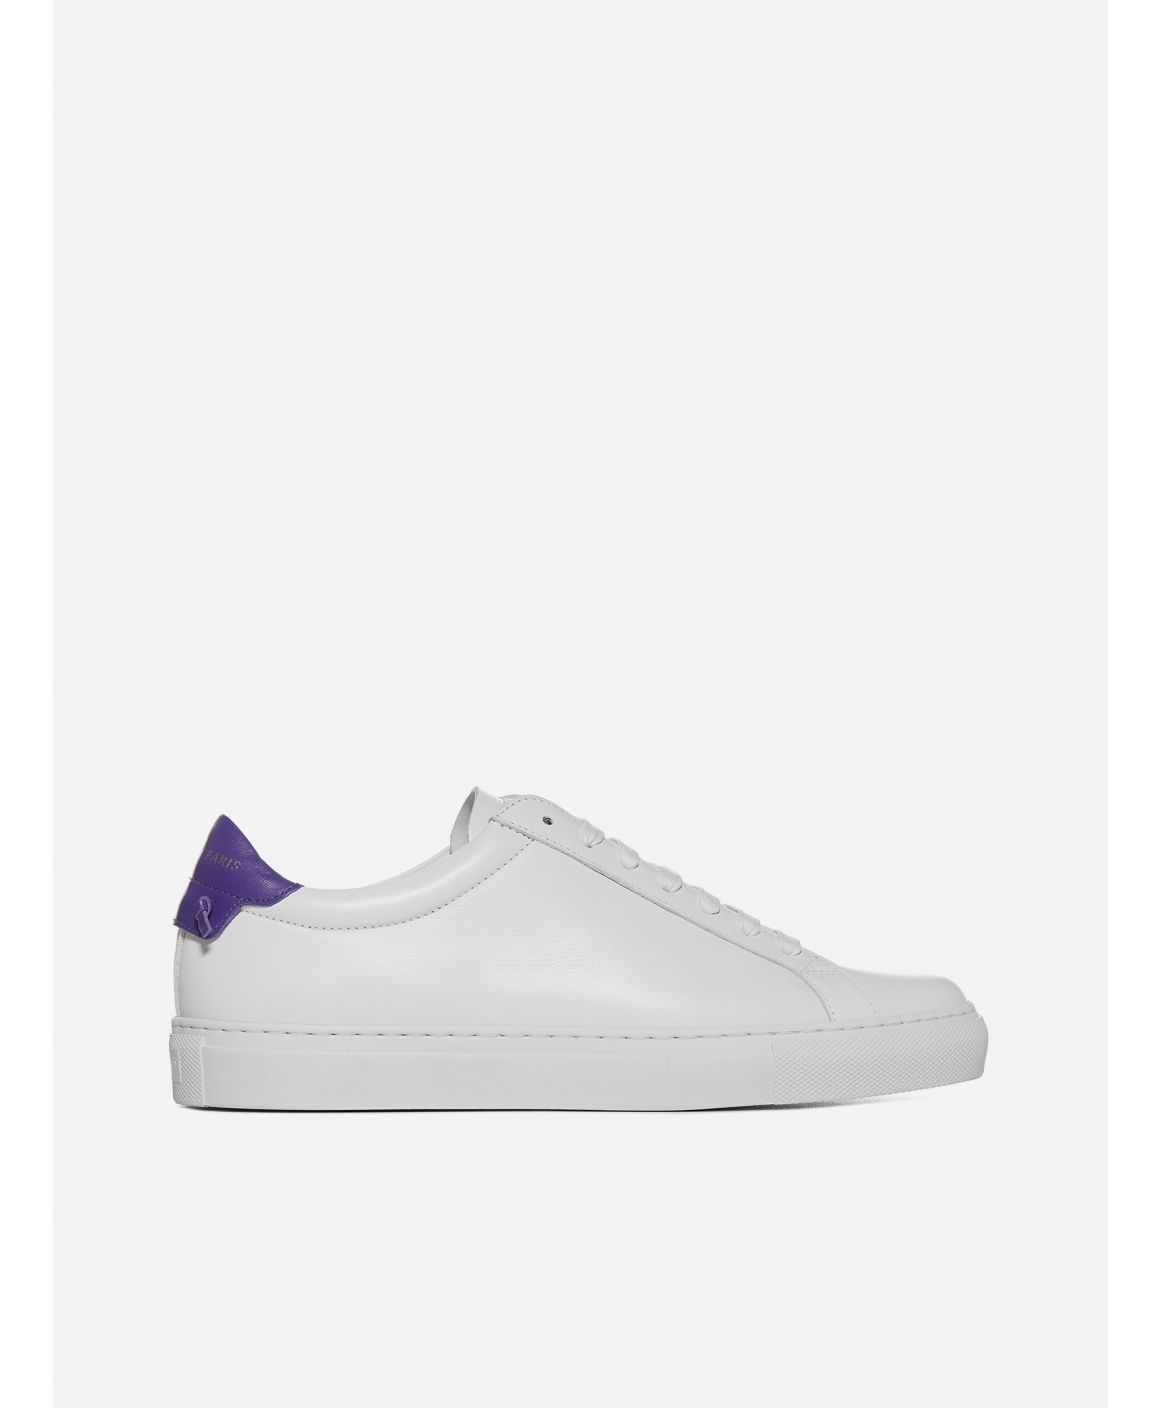 Urban Street leather low-top sneakers